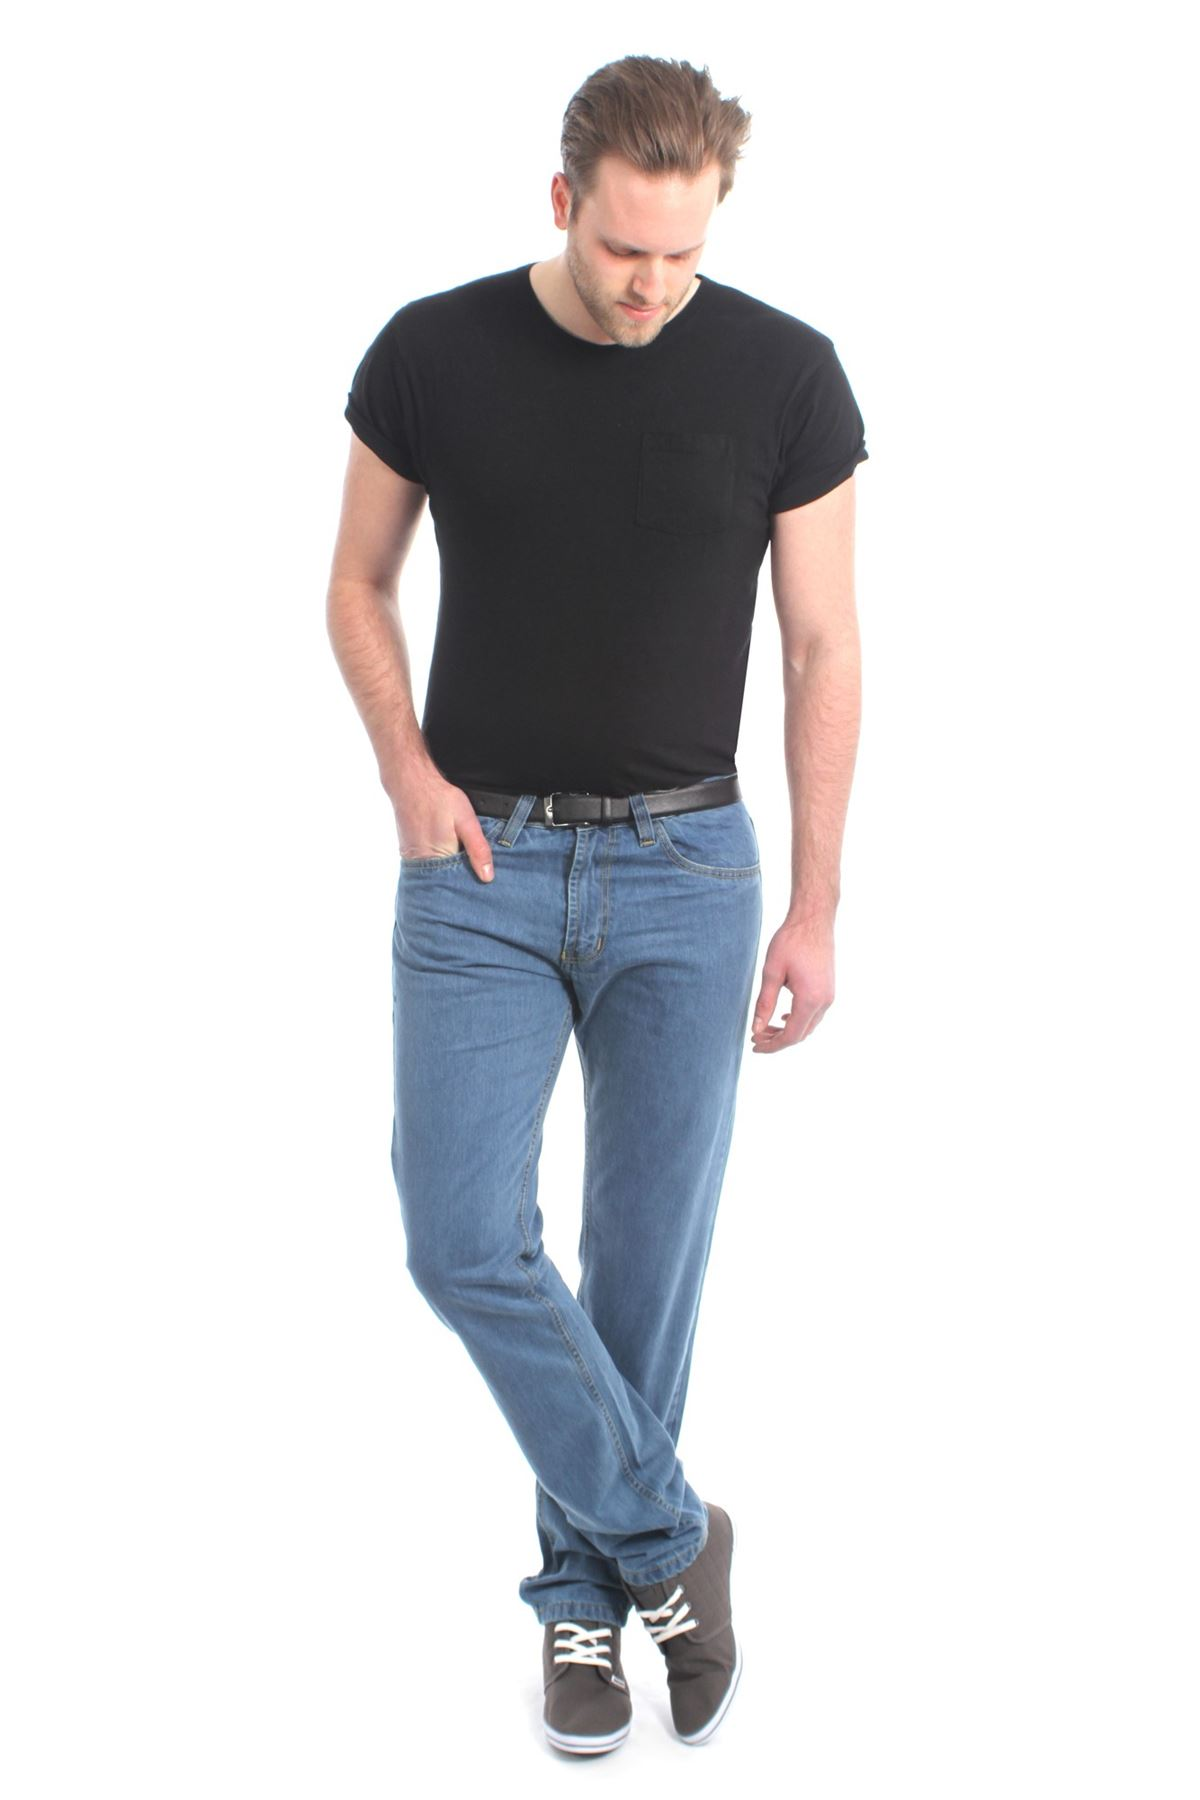 MENS STRAIGHT LEG REGULAR FIT DENIM JEANS BOYS CASUAL JEANS NEW KOLLACHE